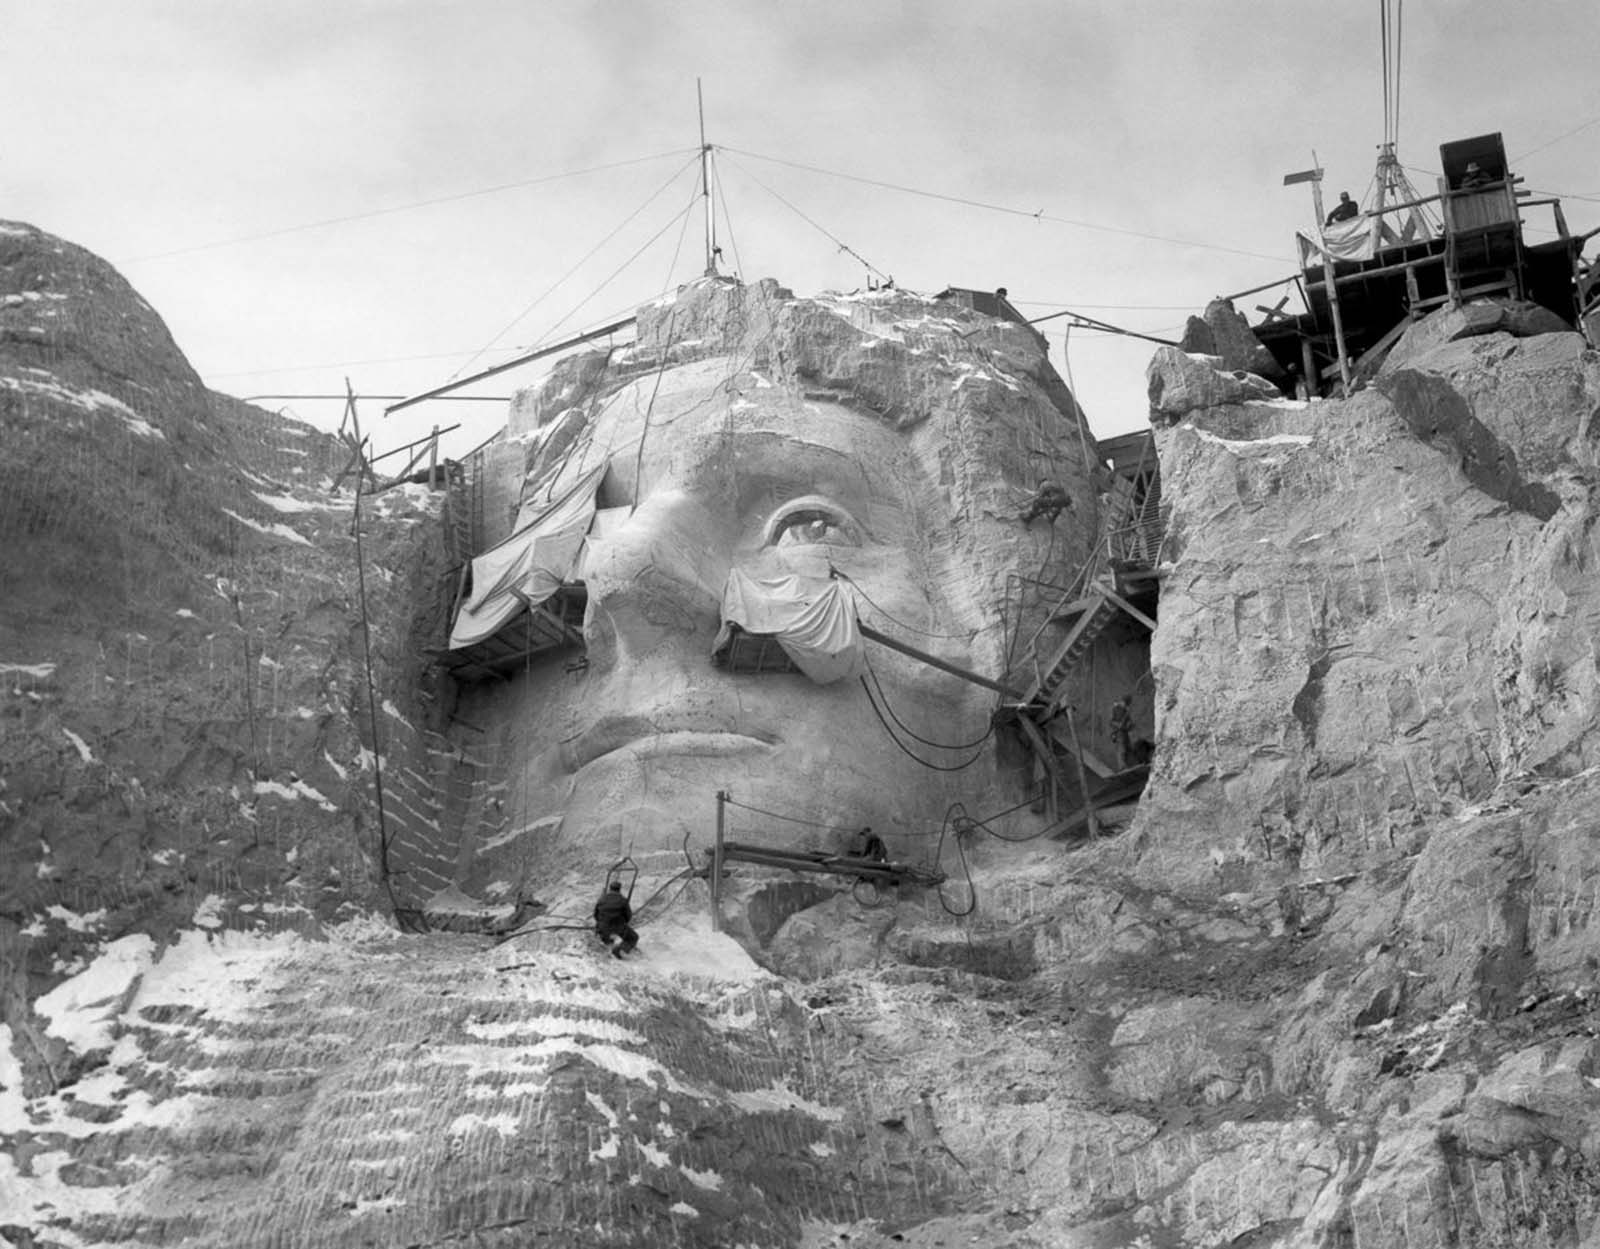 Working on the face of Thomas Jefferson. 1935.